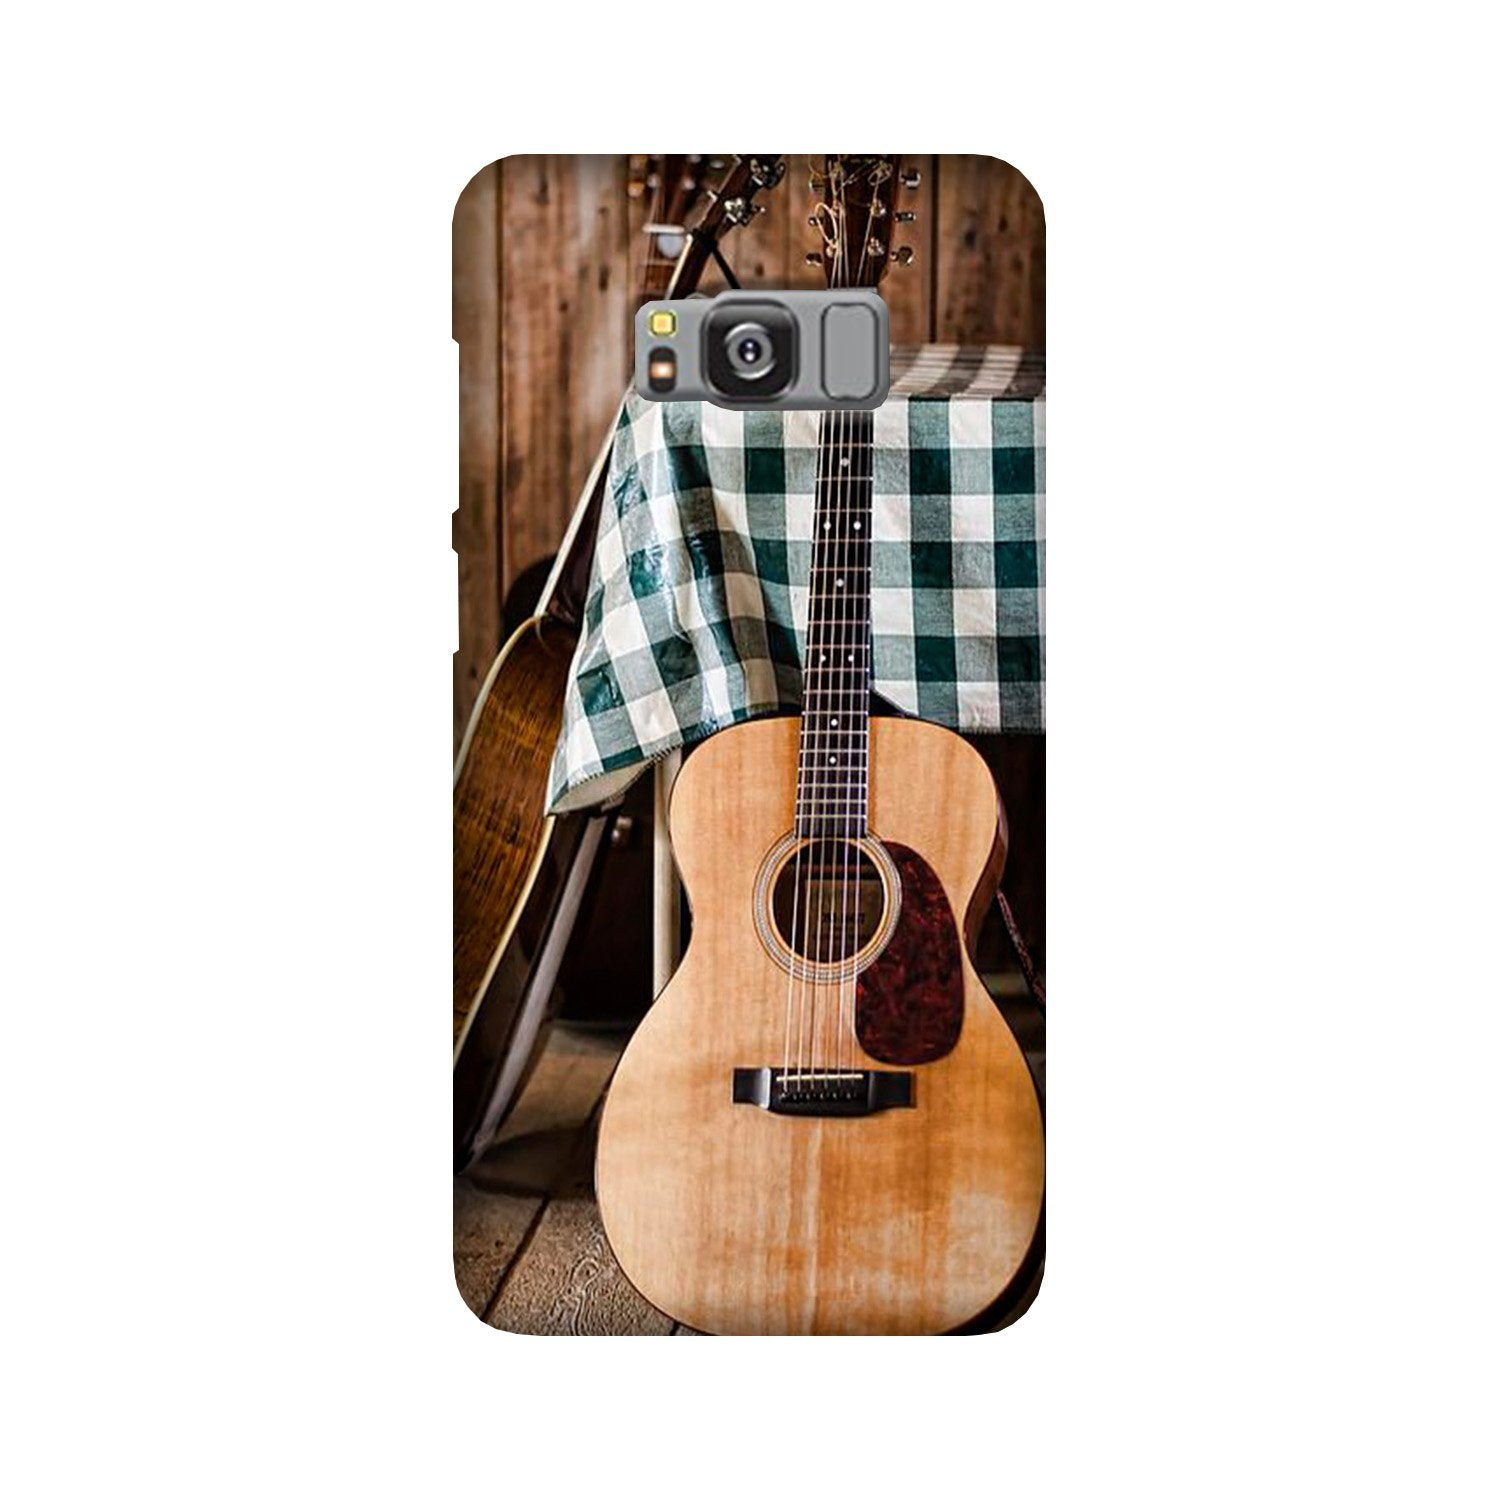 Guitar2 Case for Galaxy S8 Plus